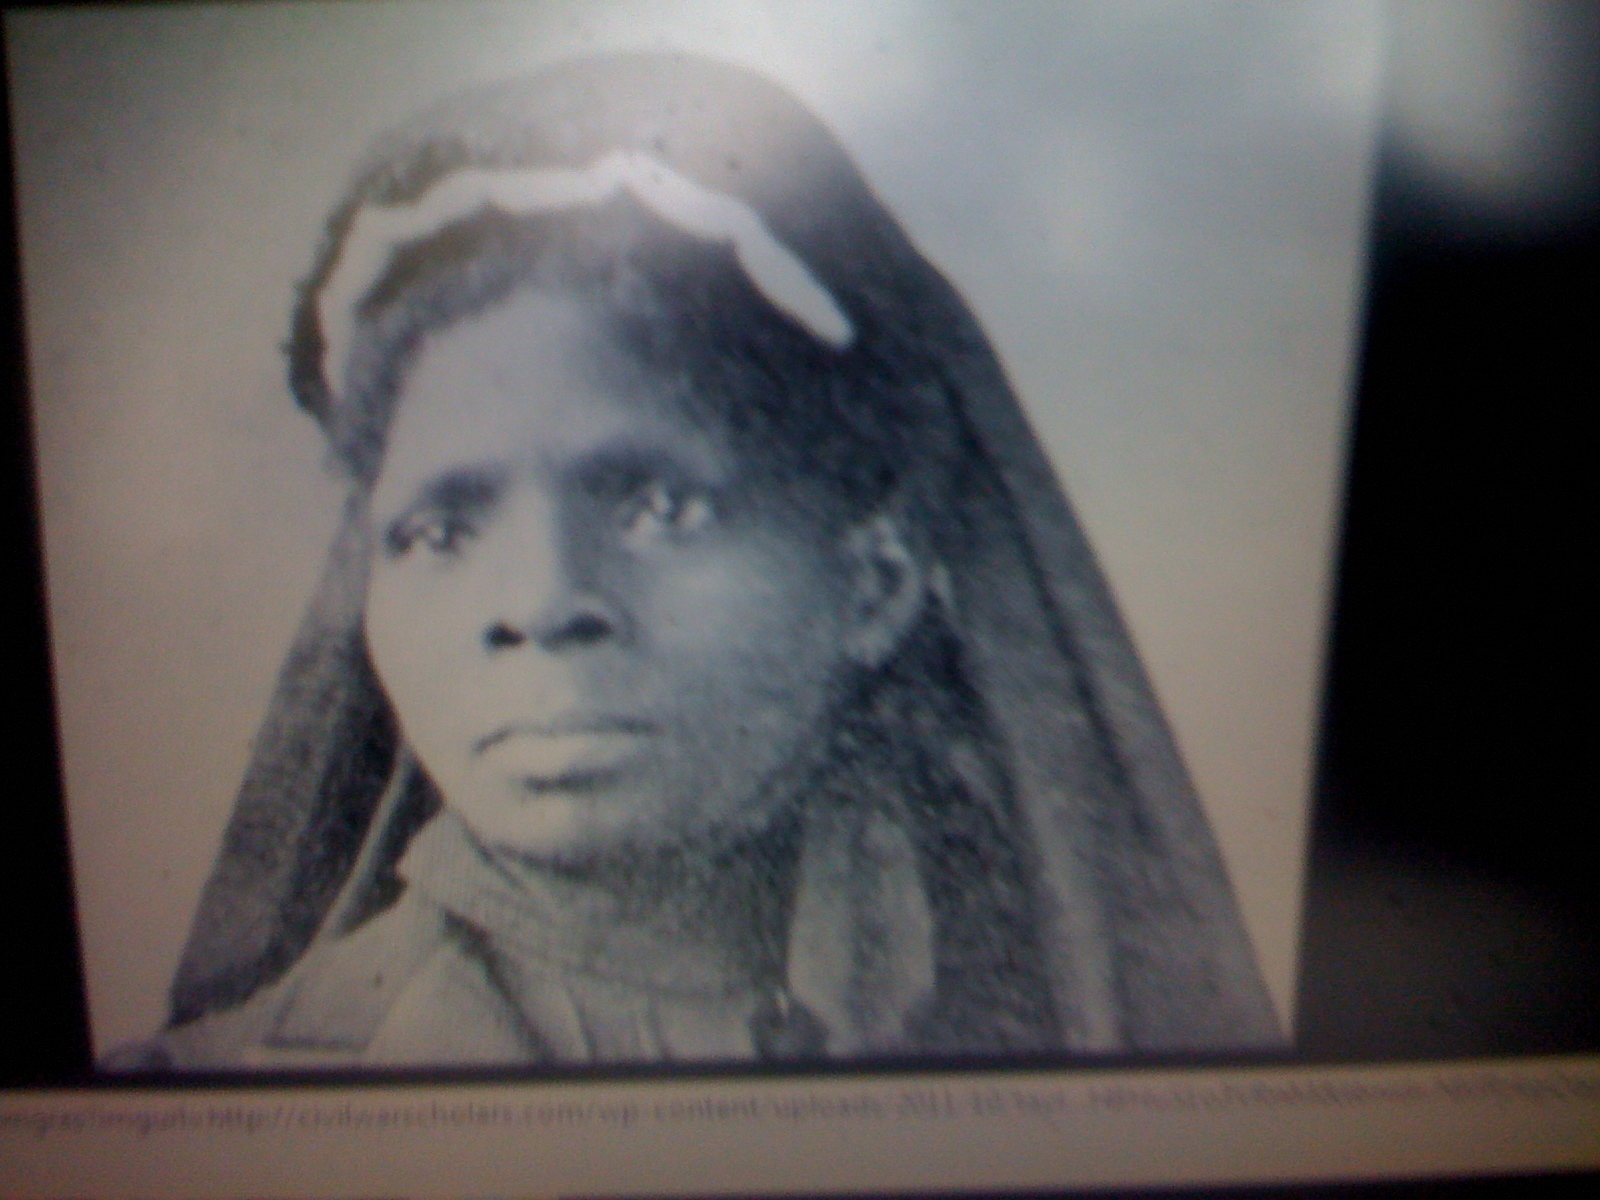 susie king taylor Social activist, nurse (black clara barton) during the civil war, teacher, laundress, and domestic worker who organized african american women, including sojourner truth (see also) and harriet tubman, to care for sick and wounded black soldiers during the civil war susie king taylor was born a.